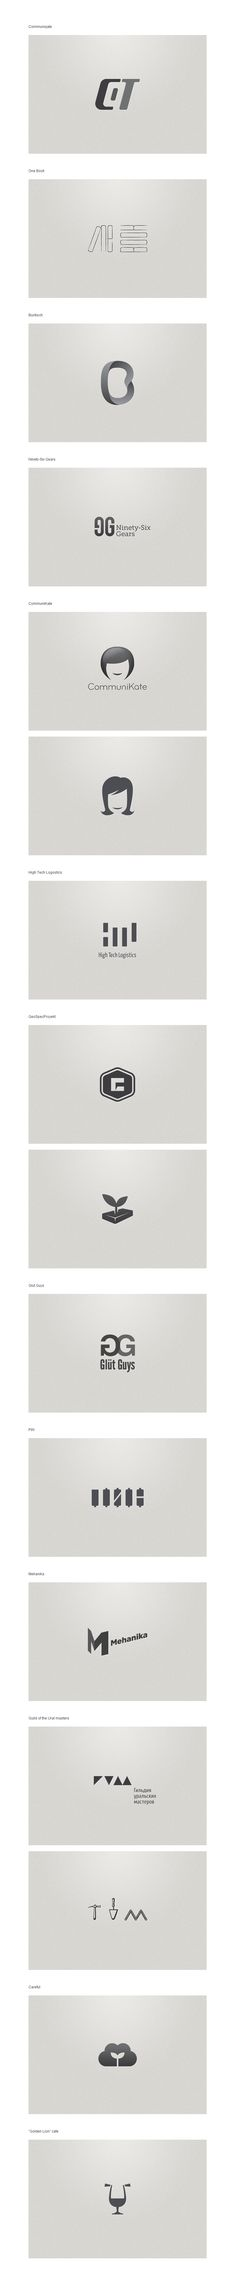 Unused Logos 09-11, Logo © Алексей Бусыгин